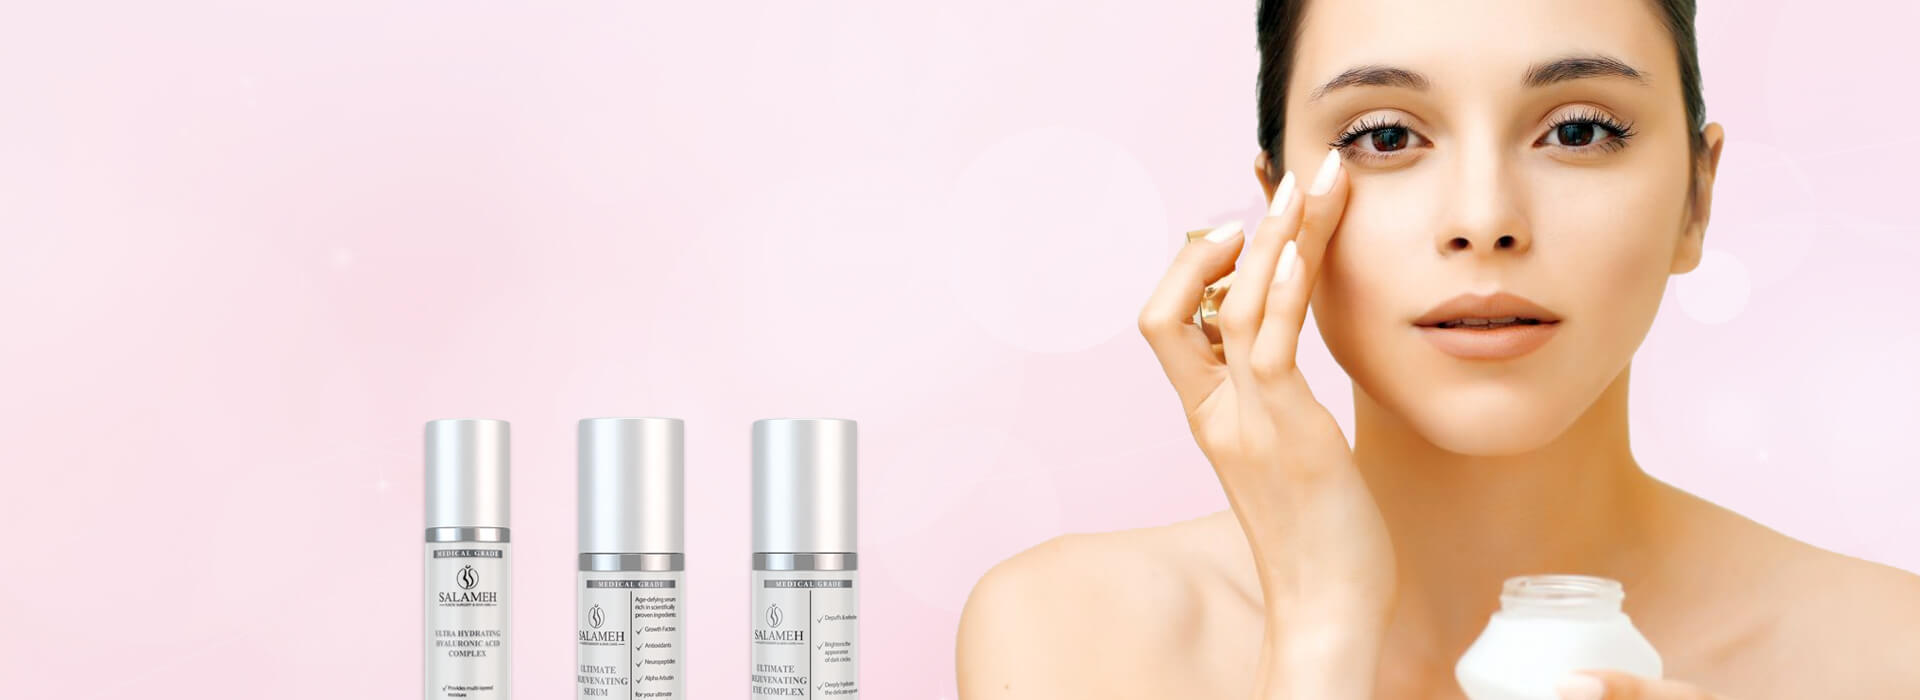 Love your skin. Care for yourself.  Optimize your skin care routine with products formulated by Dr. Salameh, just for you.